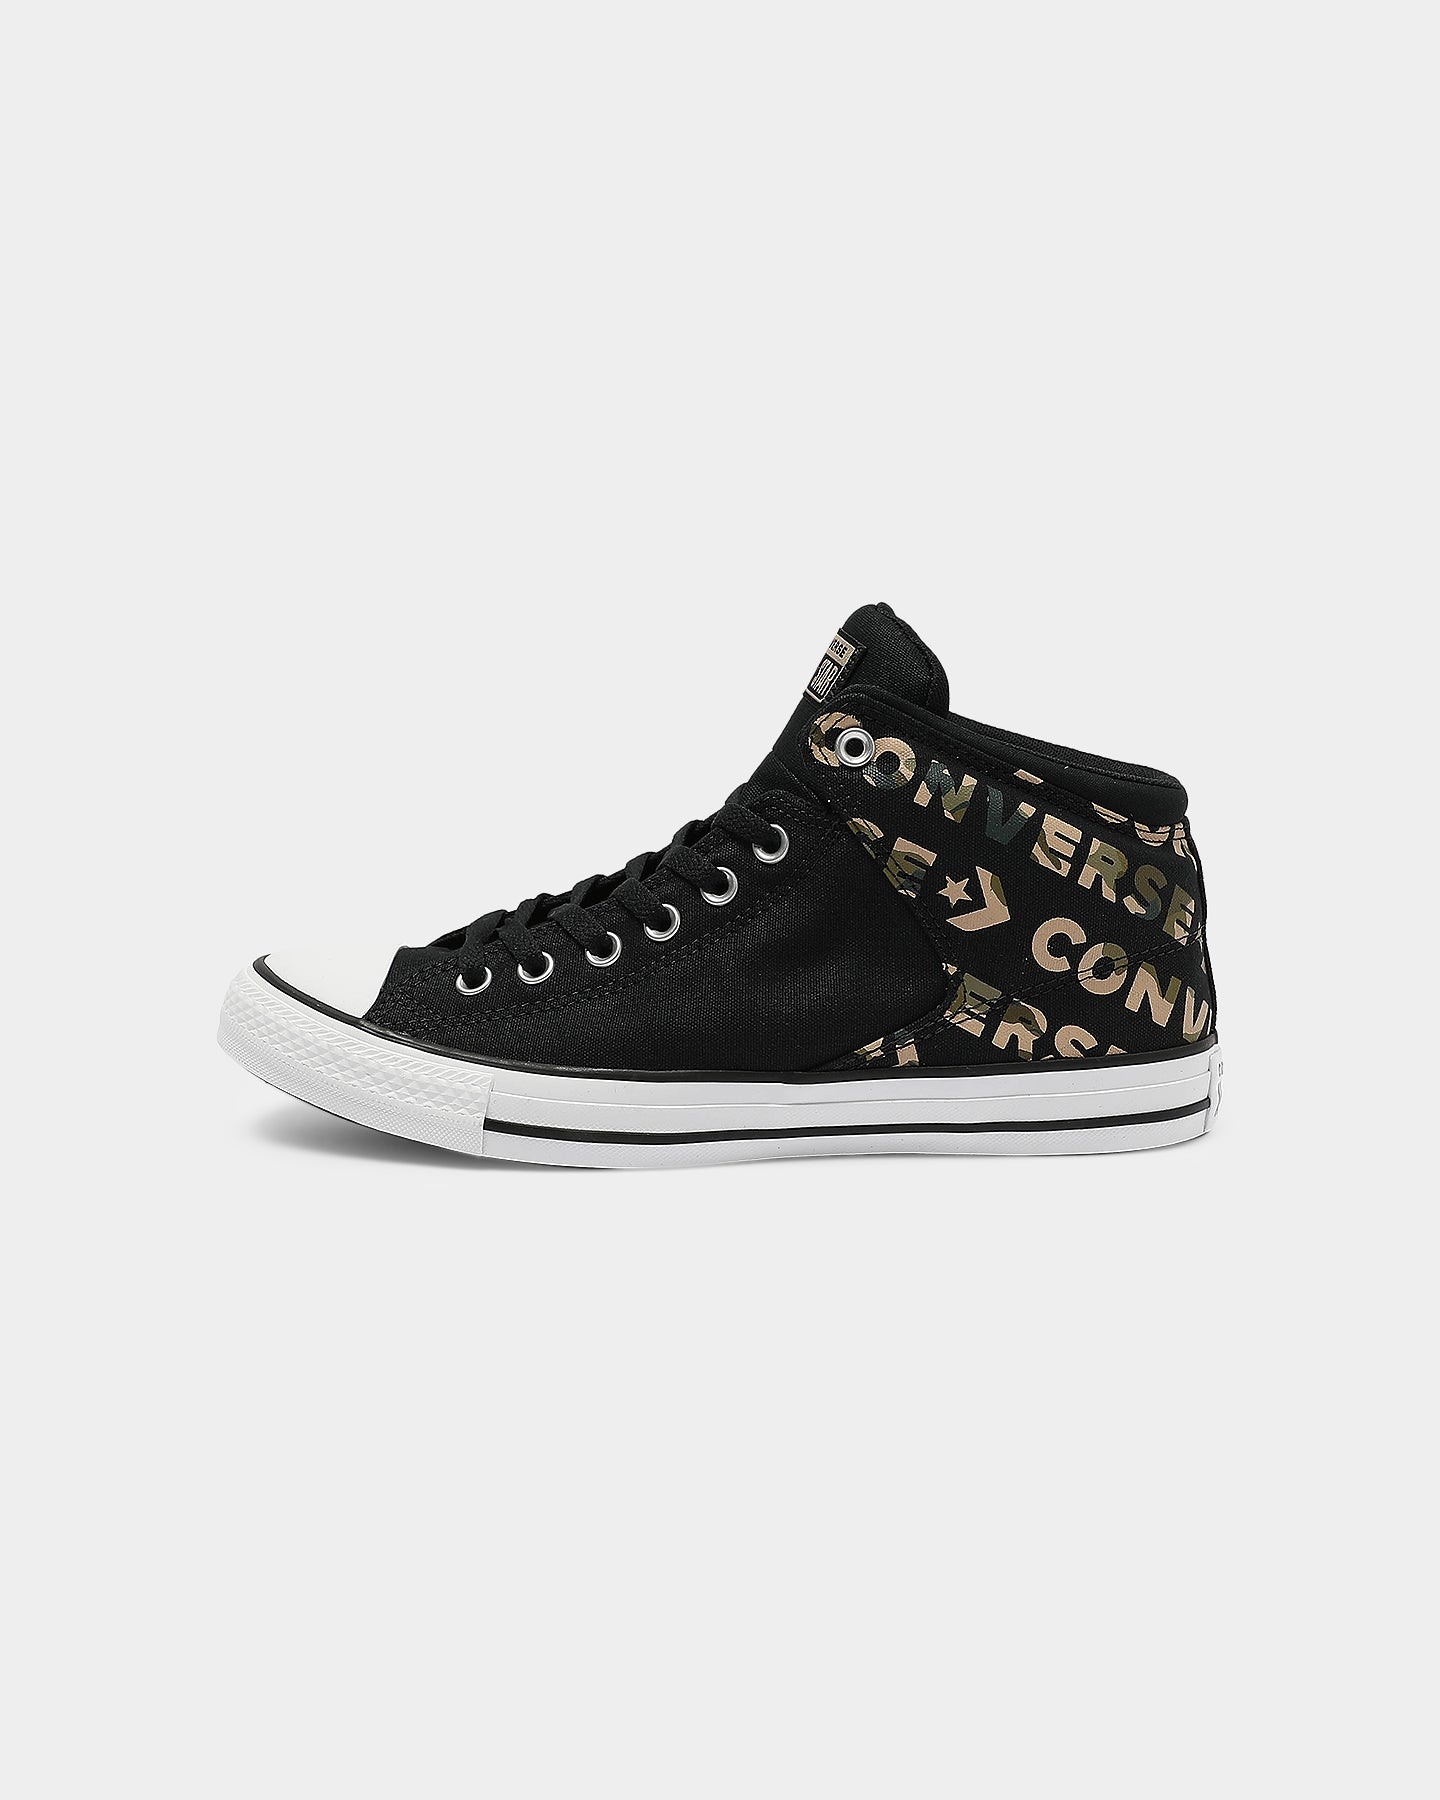 Converse CT All Star High Street BlackKhaki